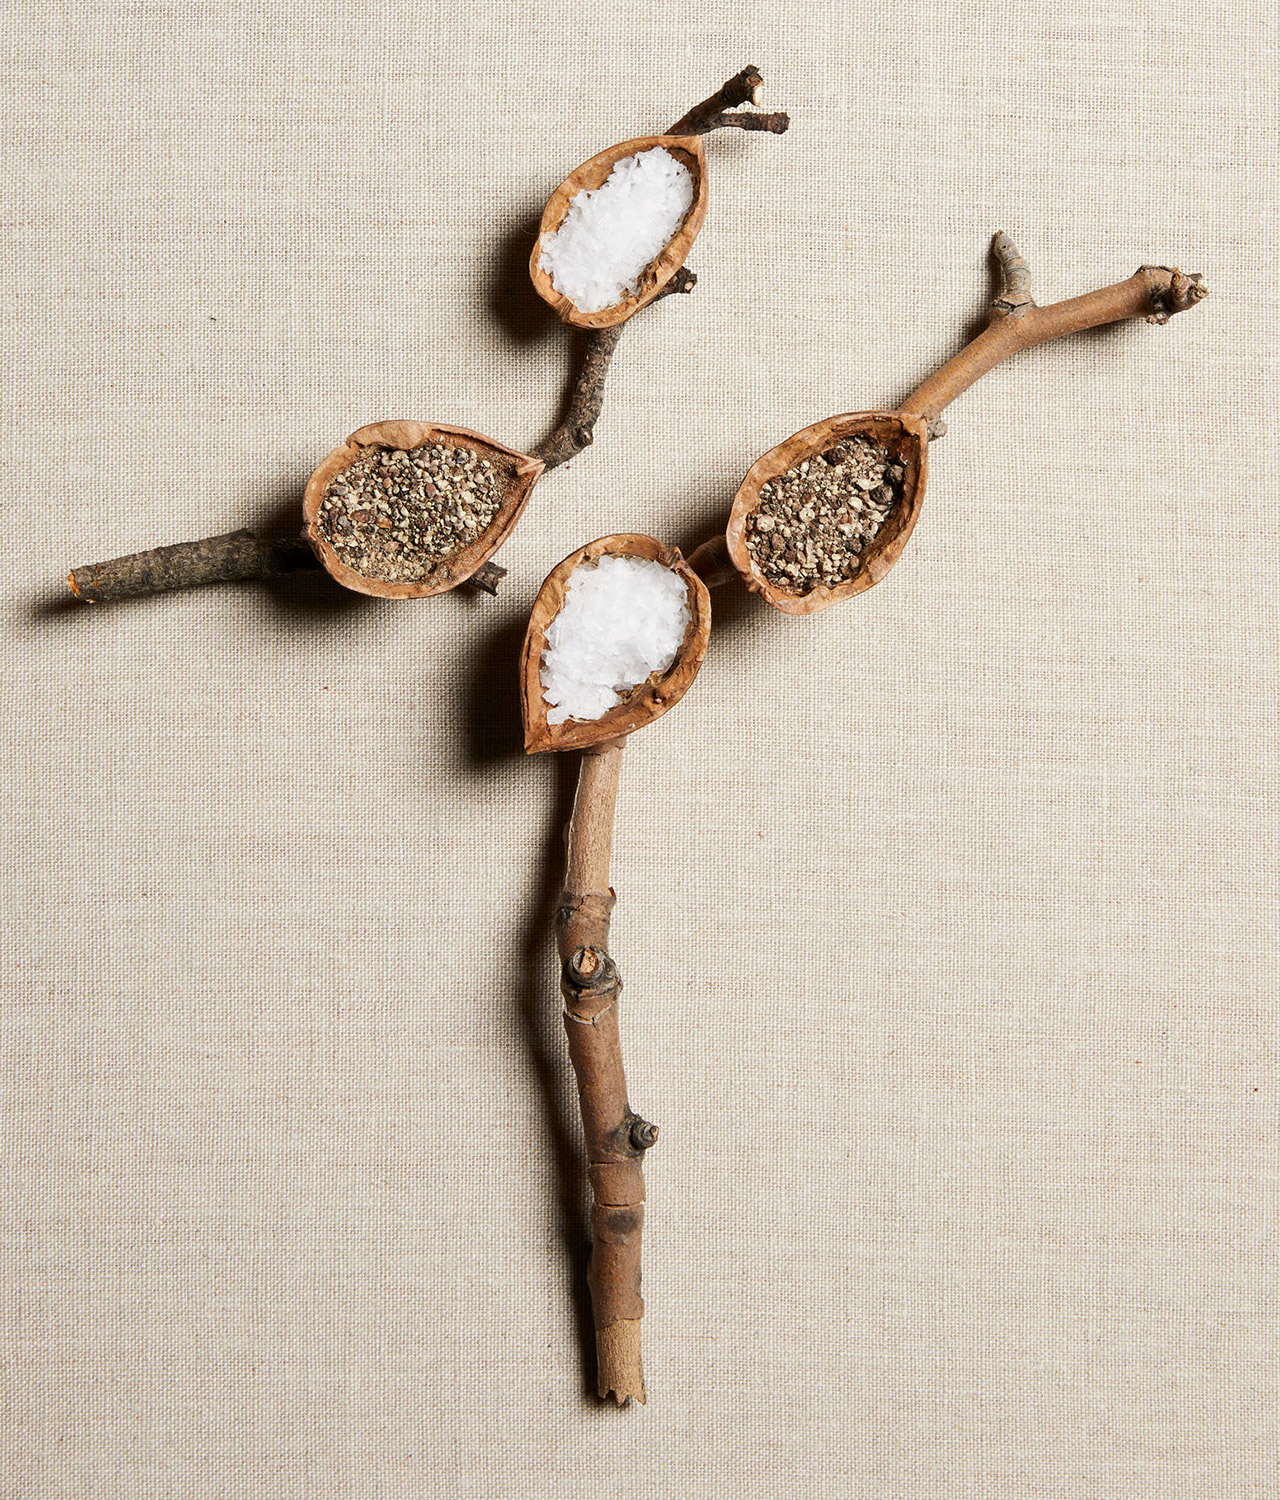 diy shell salt cellars with sticks natural place settings